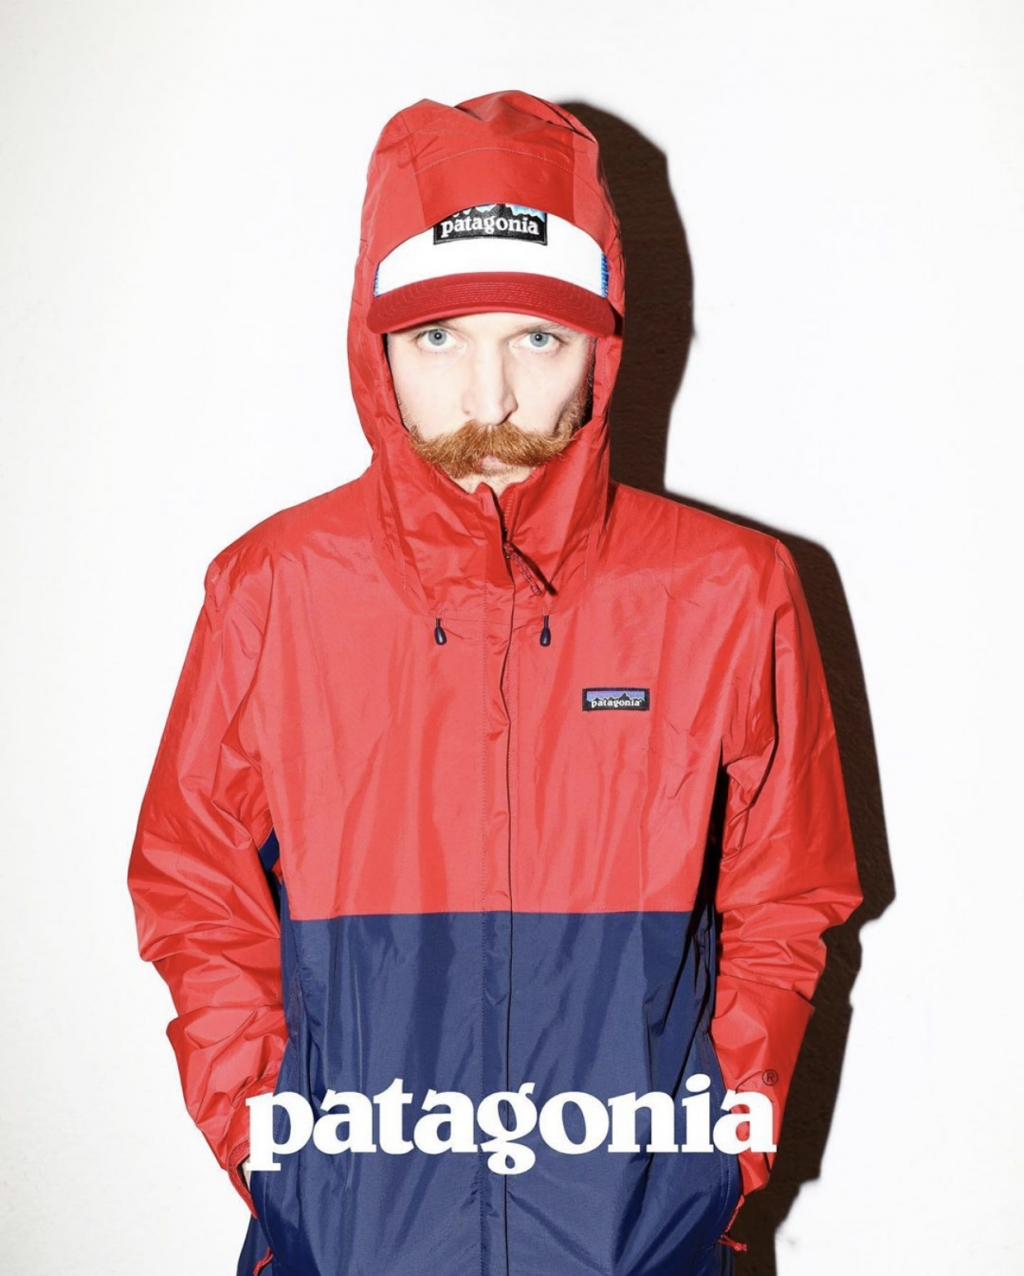 Patagonia lifestyle collection